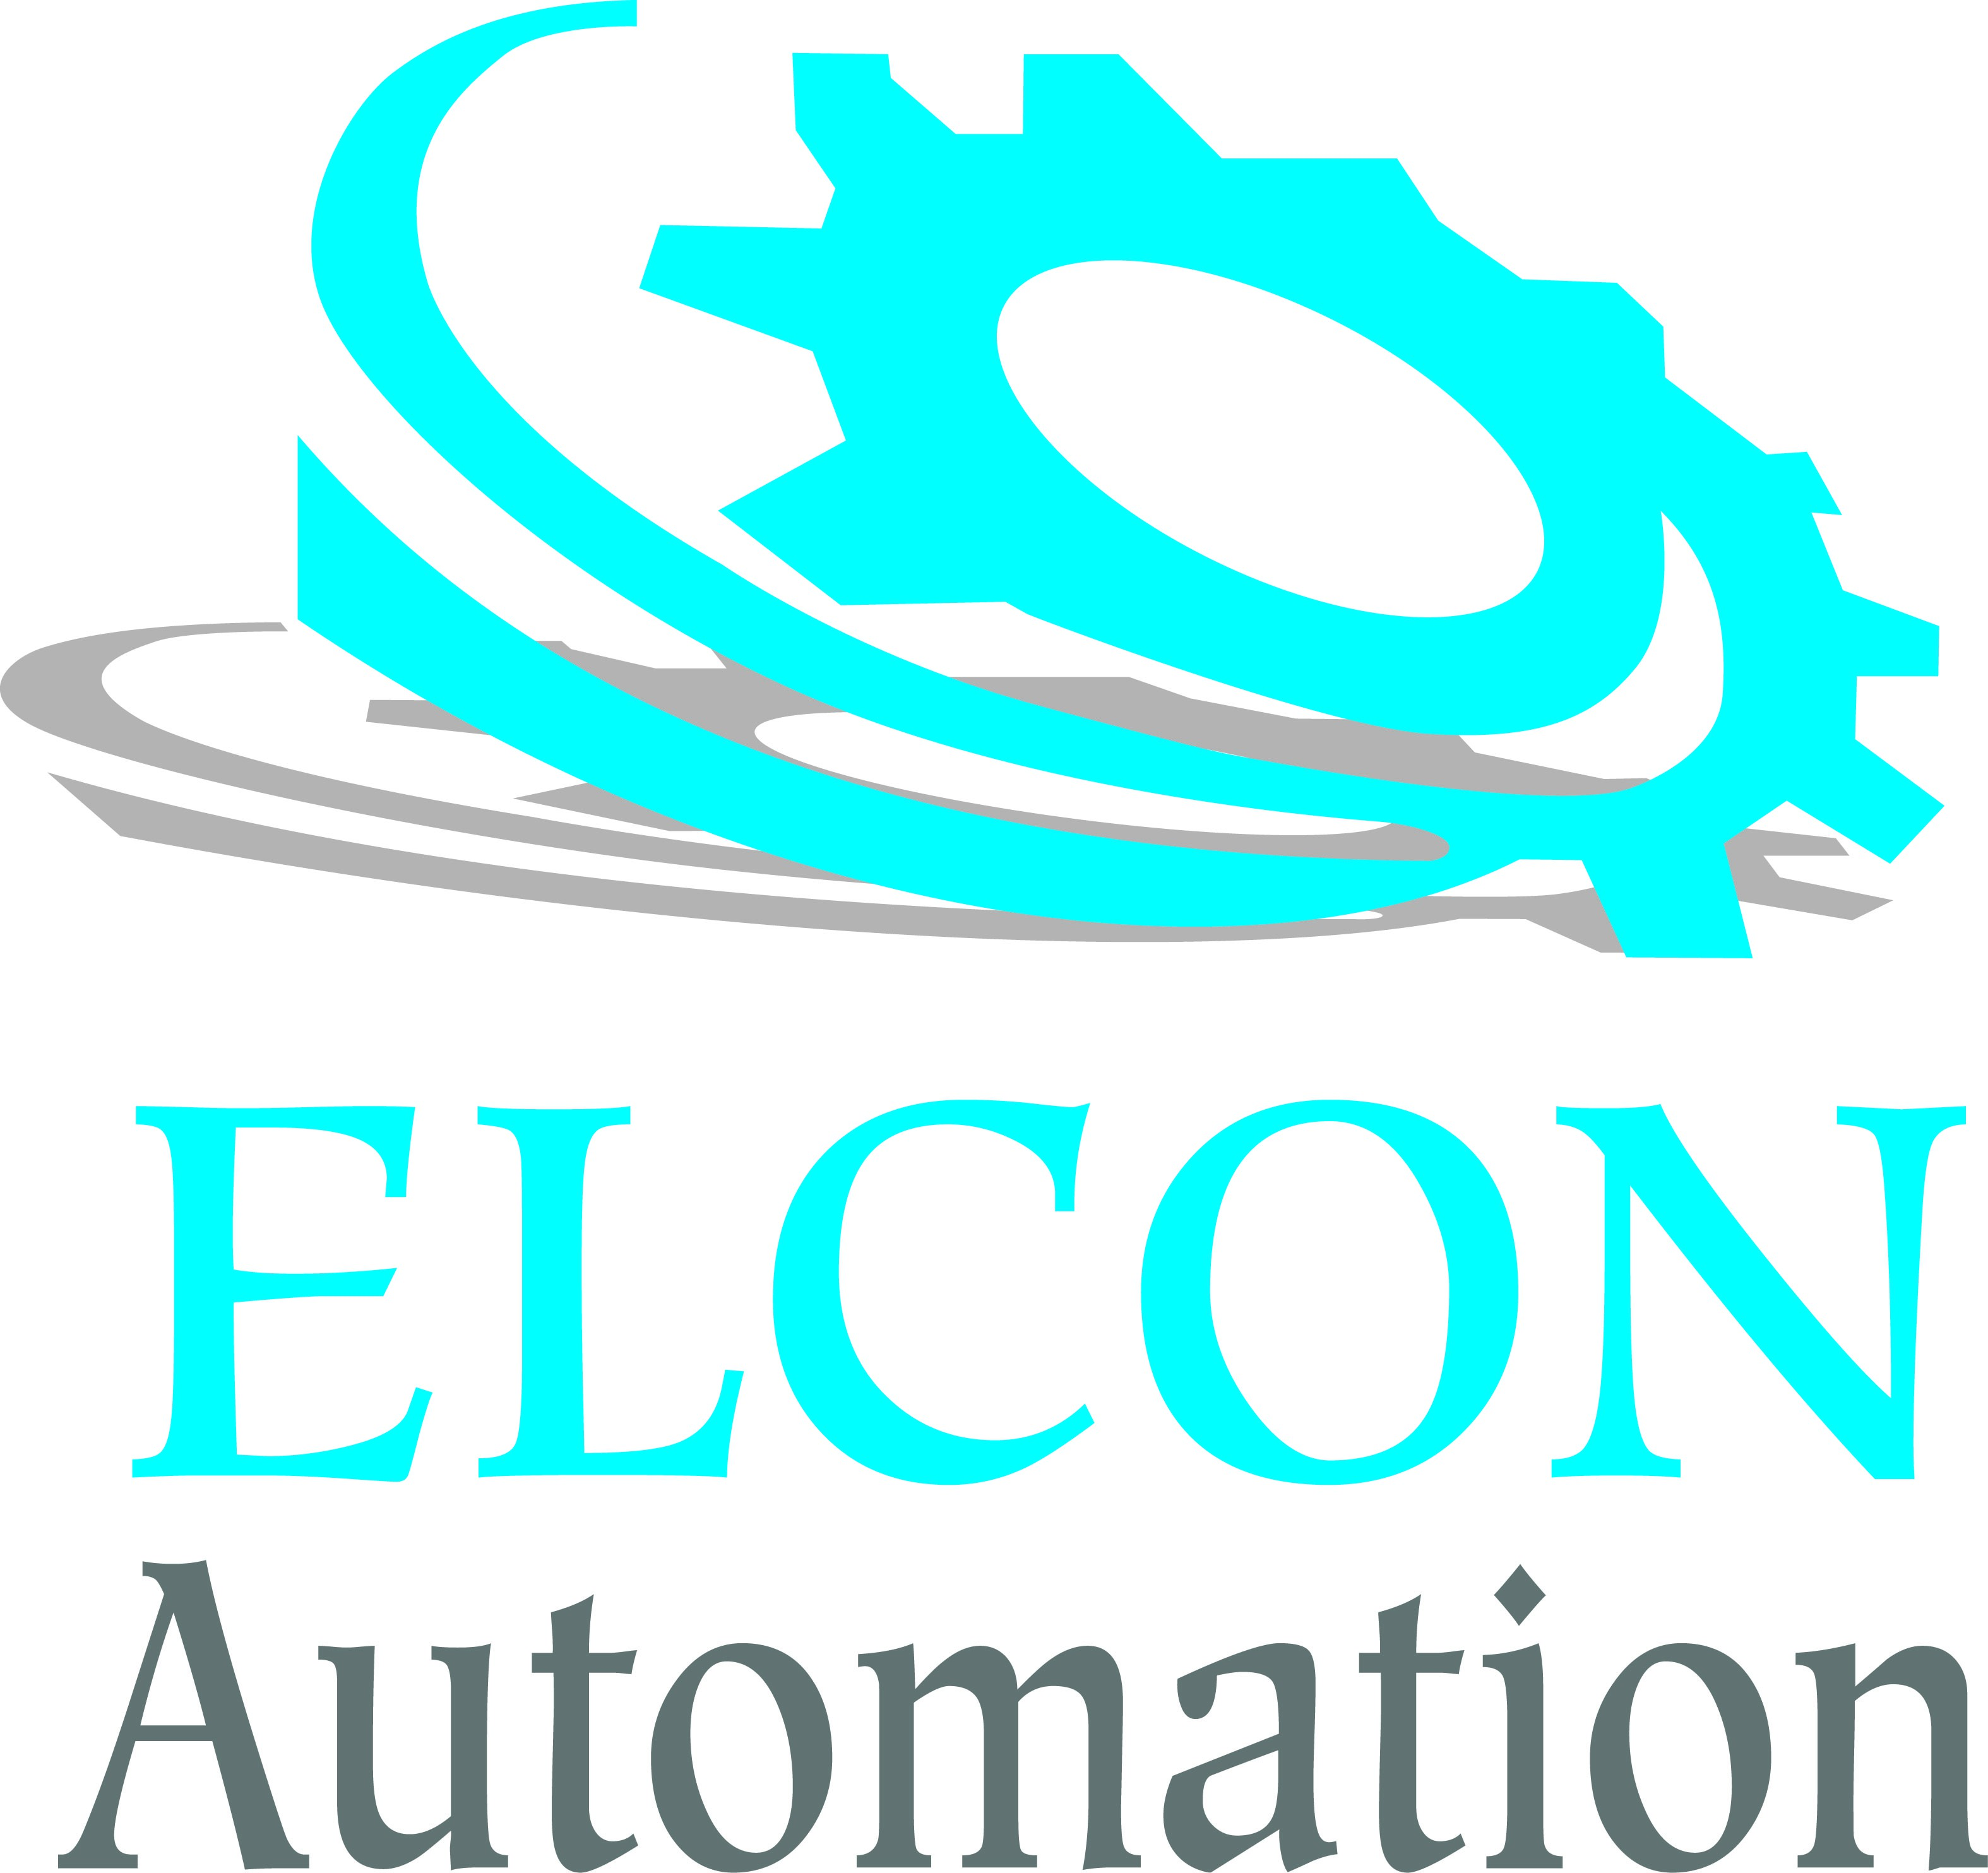 ELCON ELEKTRİK OTOMASYON VE END. ISITMA SİS. SAN. TİC. LTD. ŞTİ.